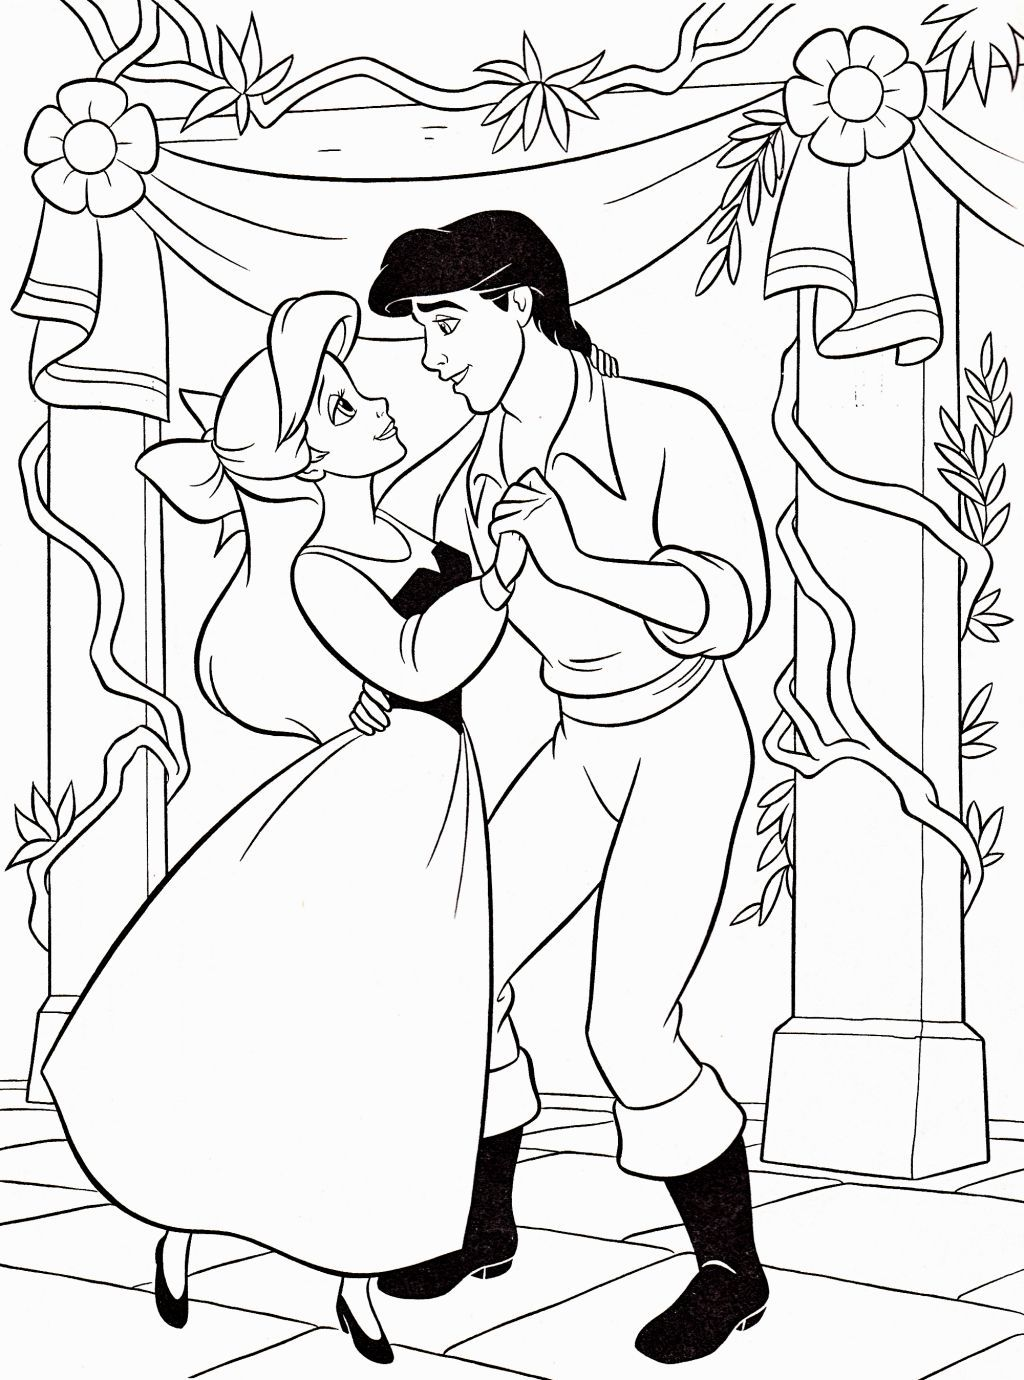 Disney princess coloring pages little mermaid - Walt Disney Coloring Page Of Princess Ariel And Prince Eric From The Little Mermaid Hd Wallpaper And Background Photos Of Walt Disney Coloring Pages